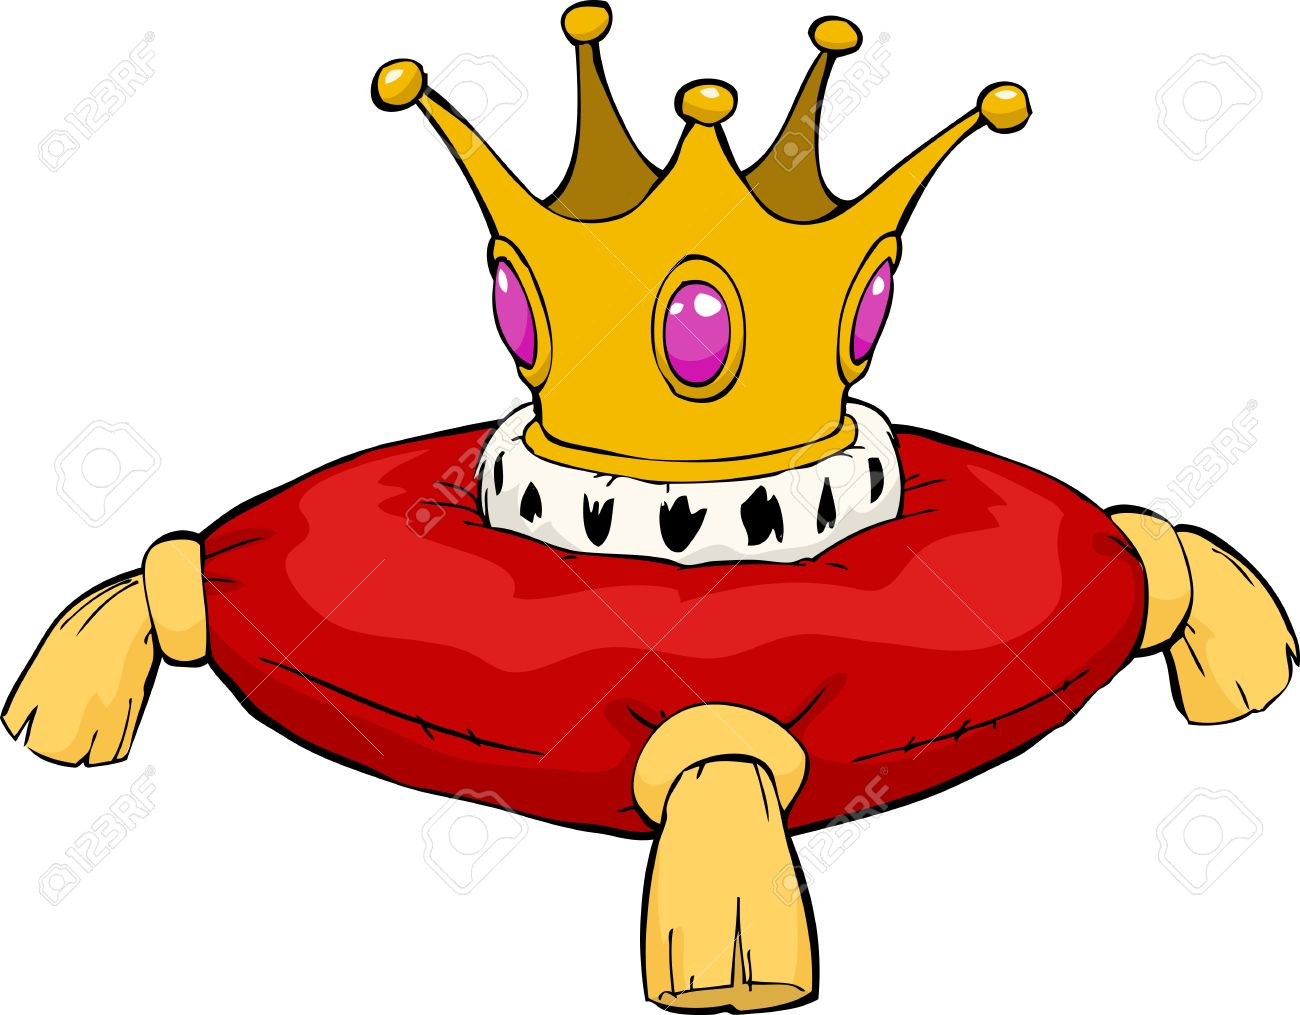 The crown on a red cushion Stock Vector - 15597445